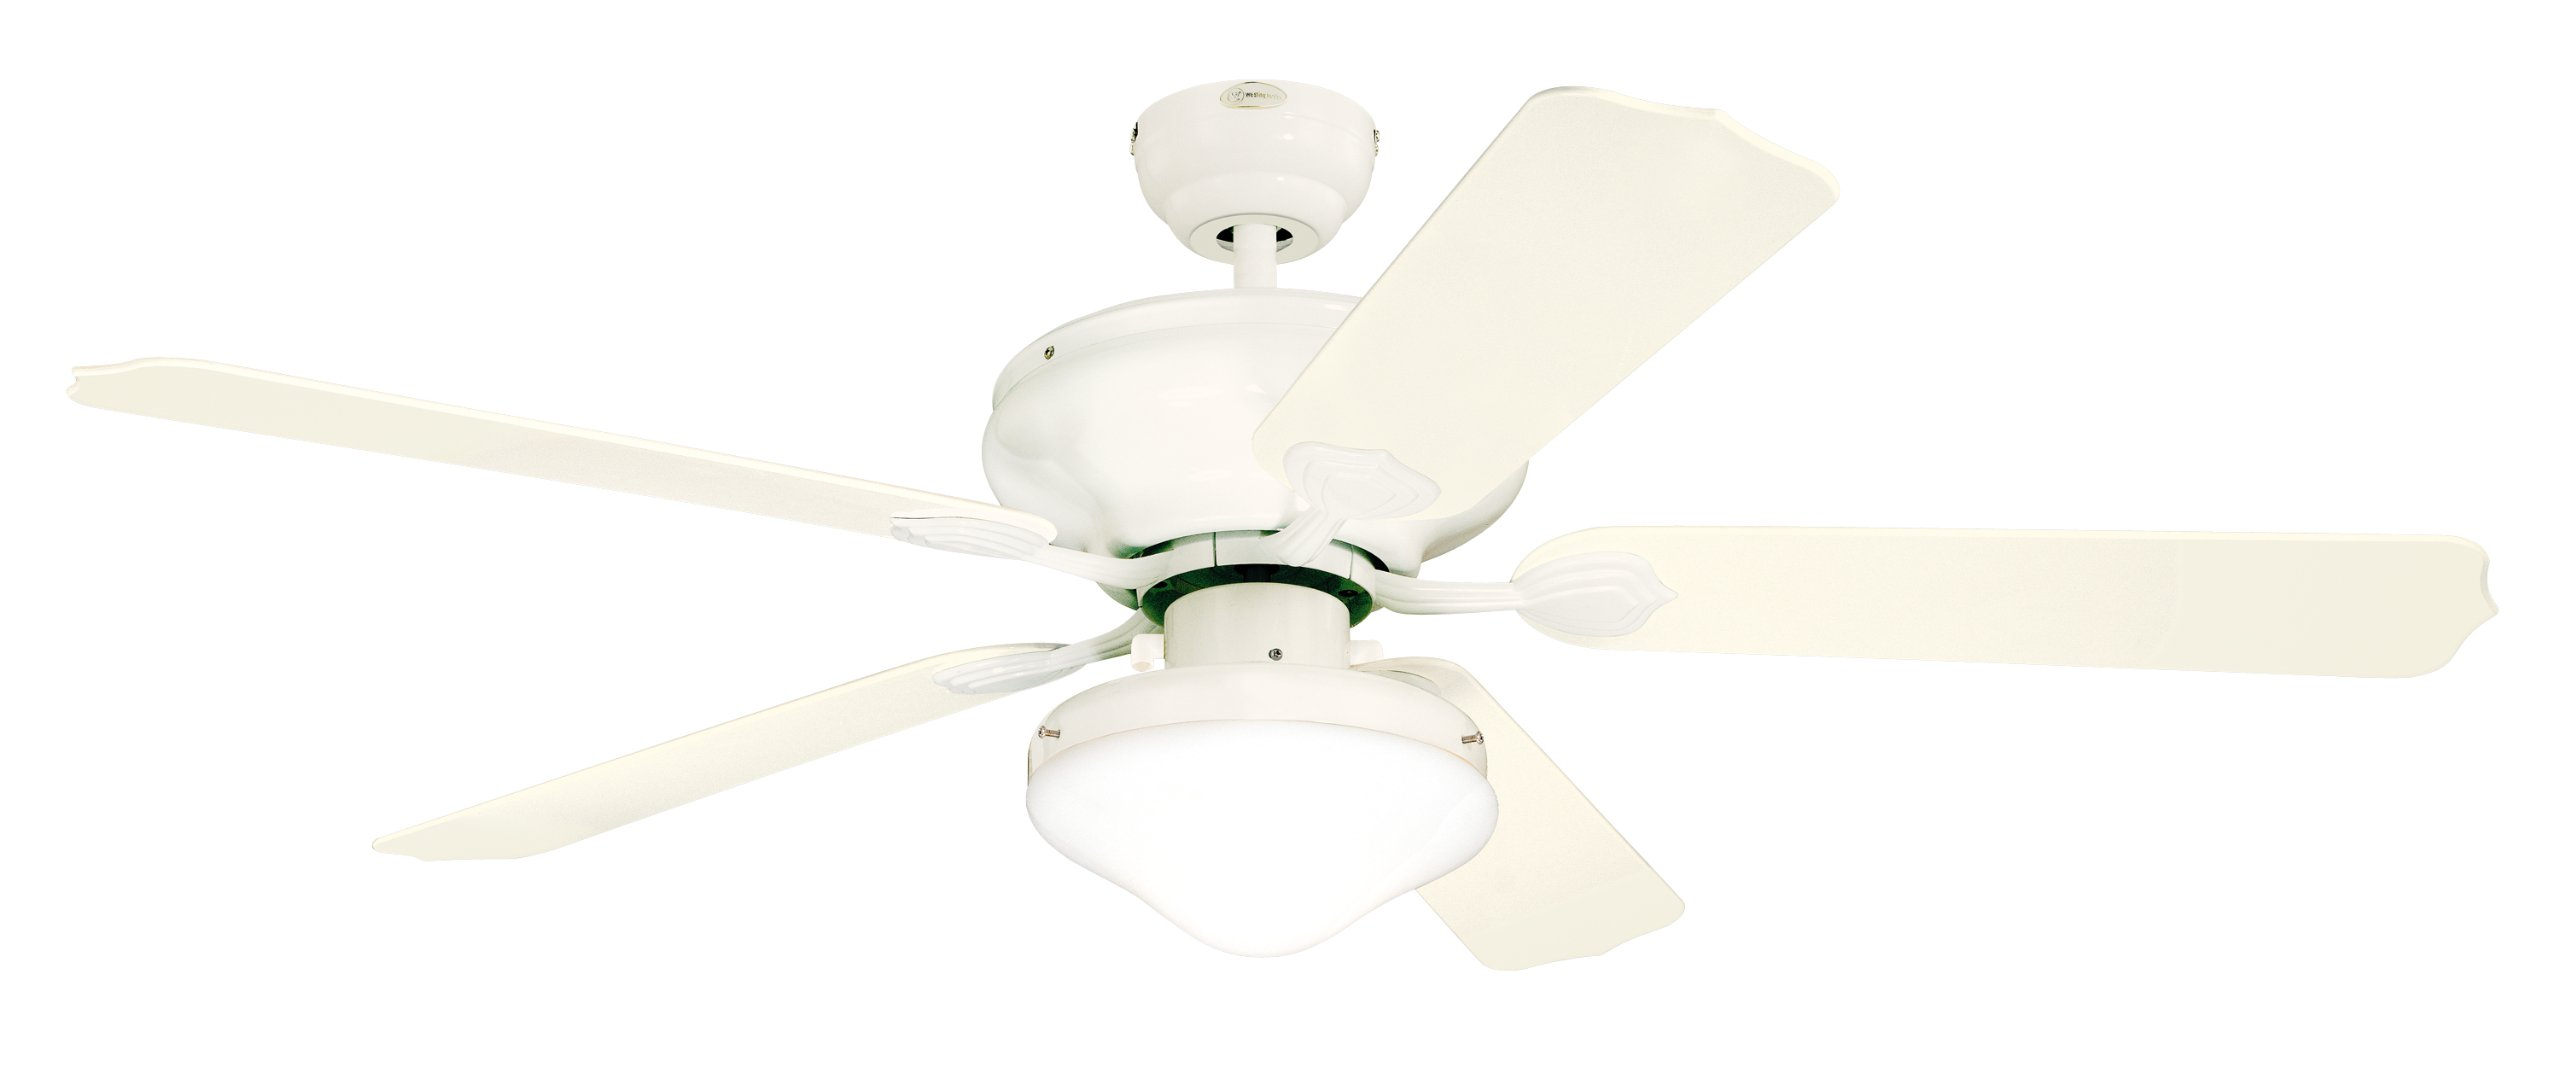 Westinghouse Lighting 7809620 Verandah Breeze II Two-Light 52-Inch Five-Blade Indoor/Outdoor Ceiling Fan, White with Opal Teardrop Glass by Westinghouse